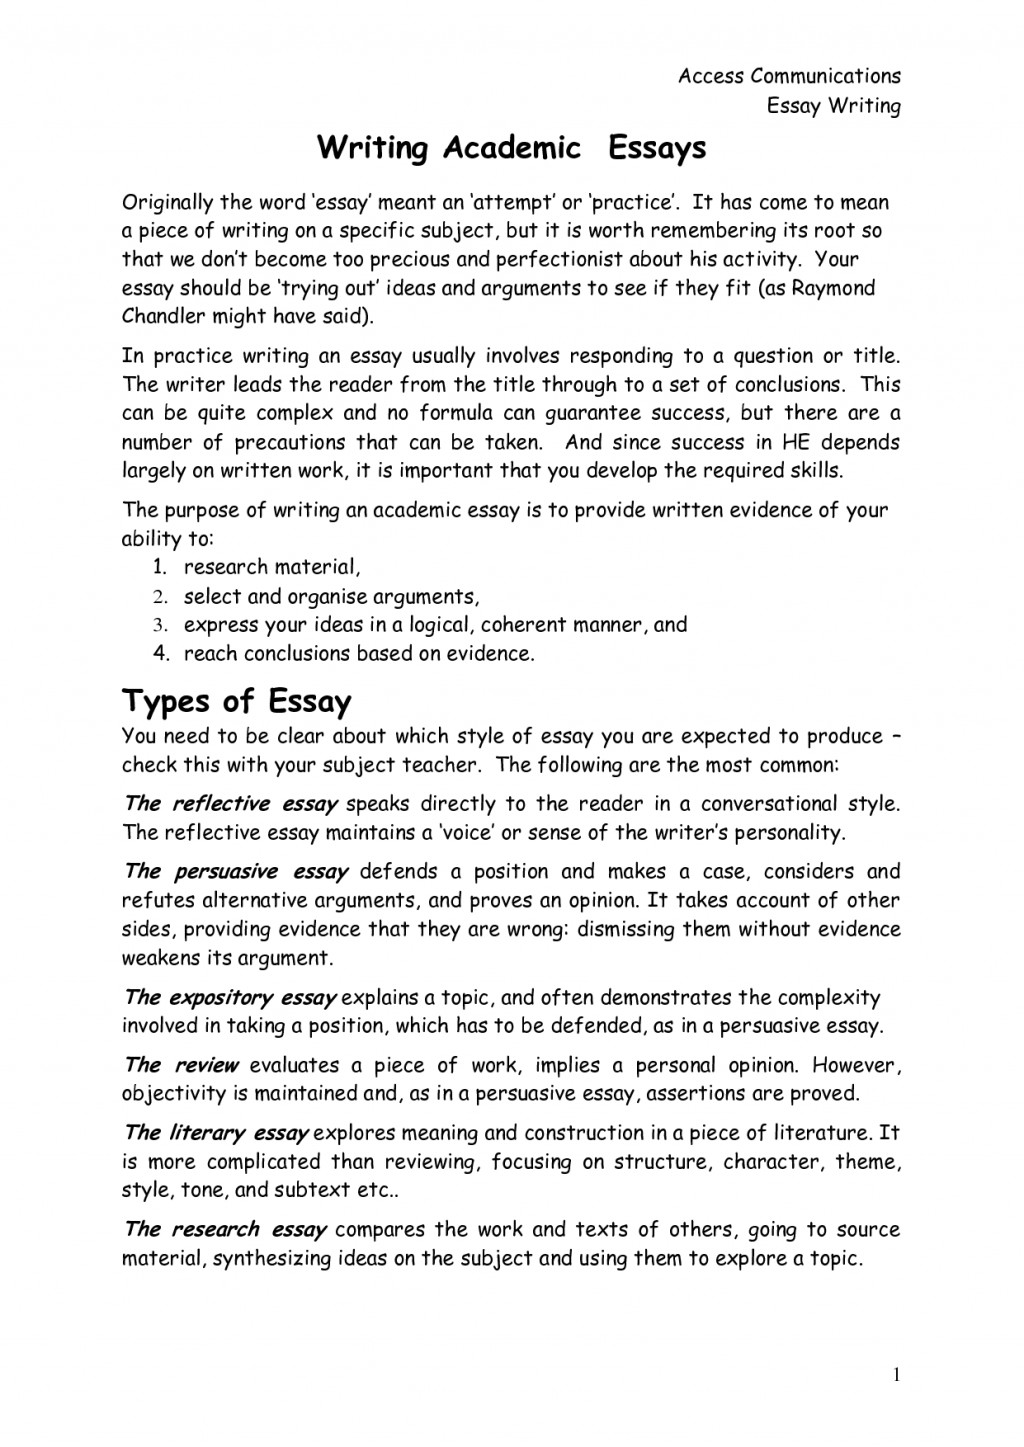 017 Essay Example How To Start Reflective Surprising A Introduction Do You An Write For Large